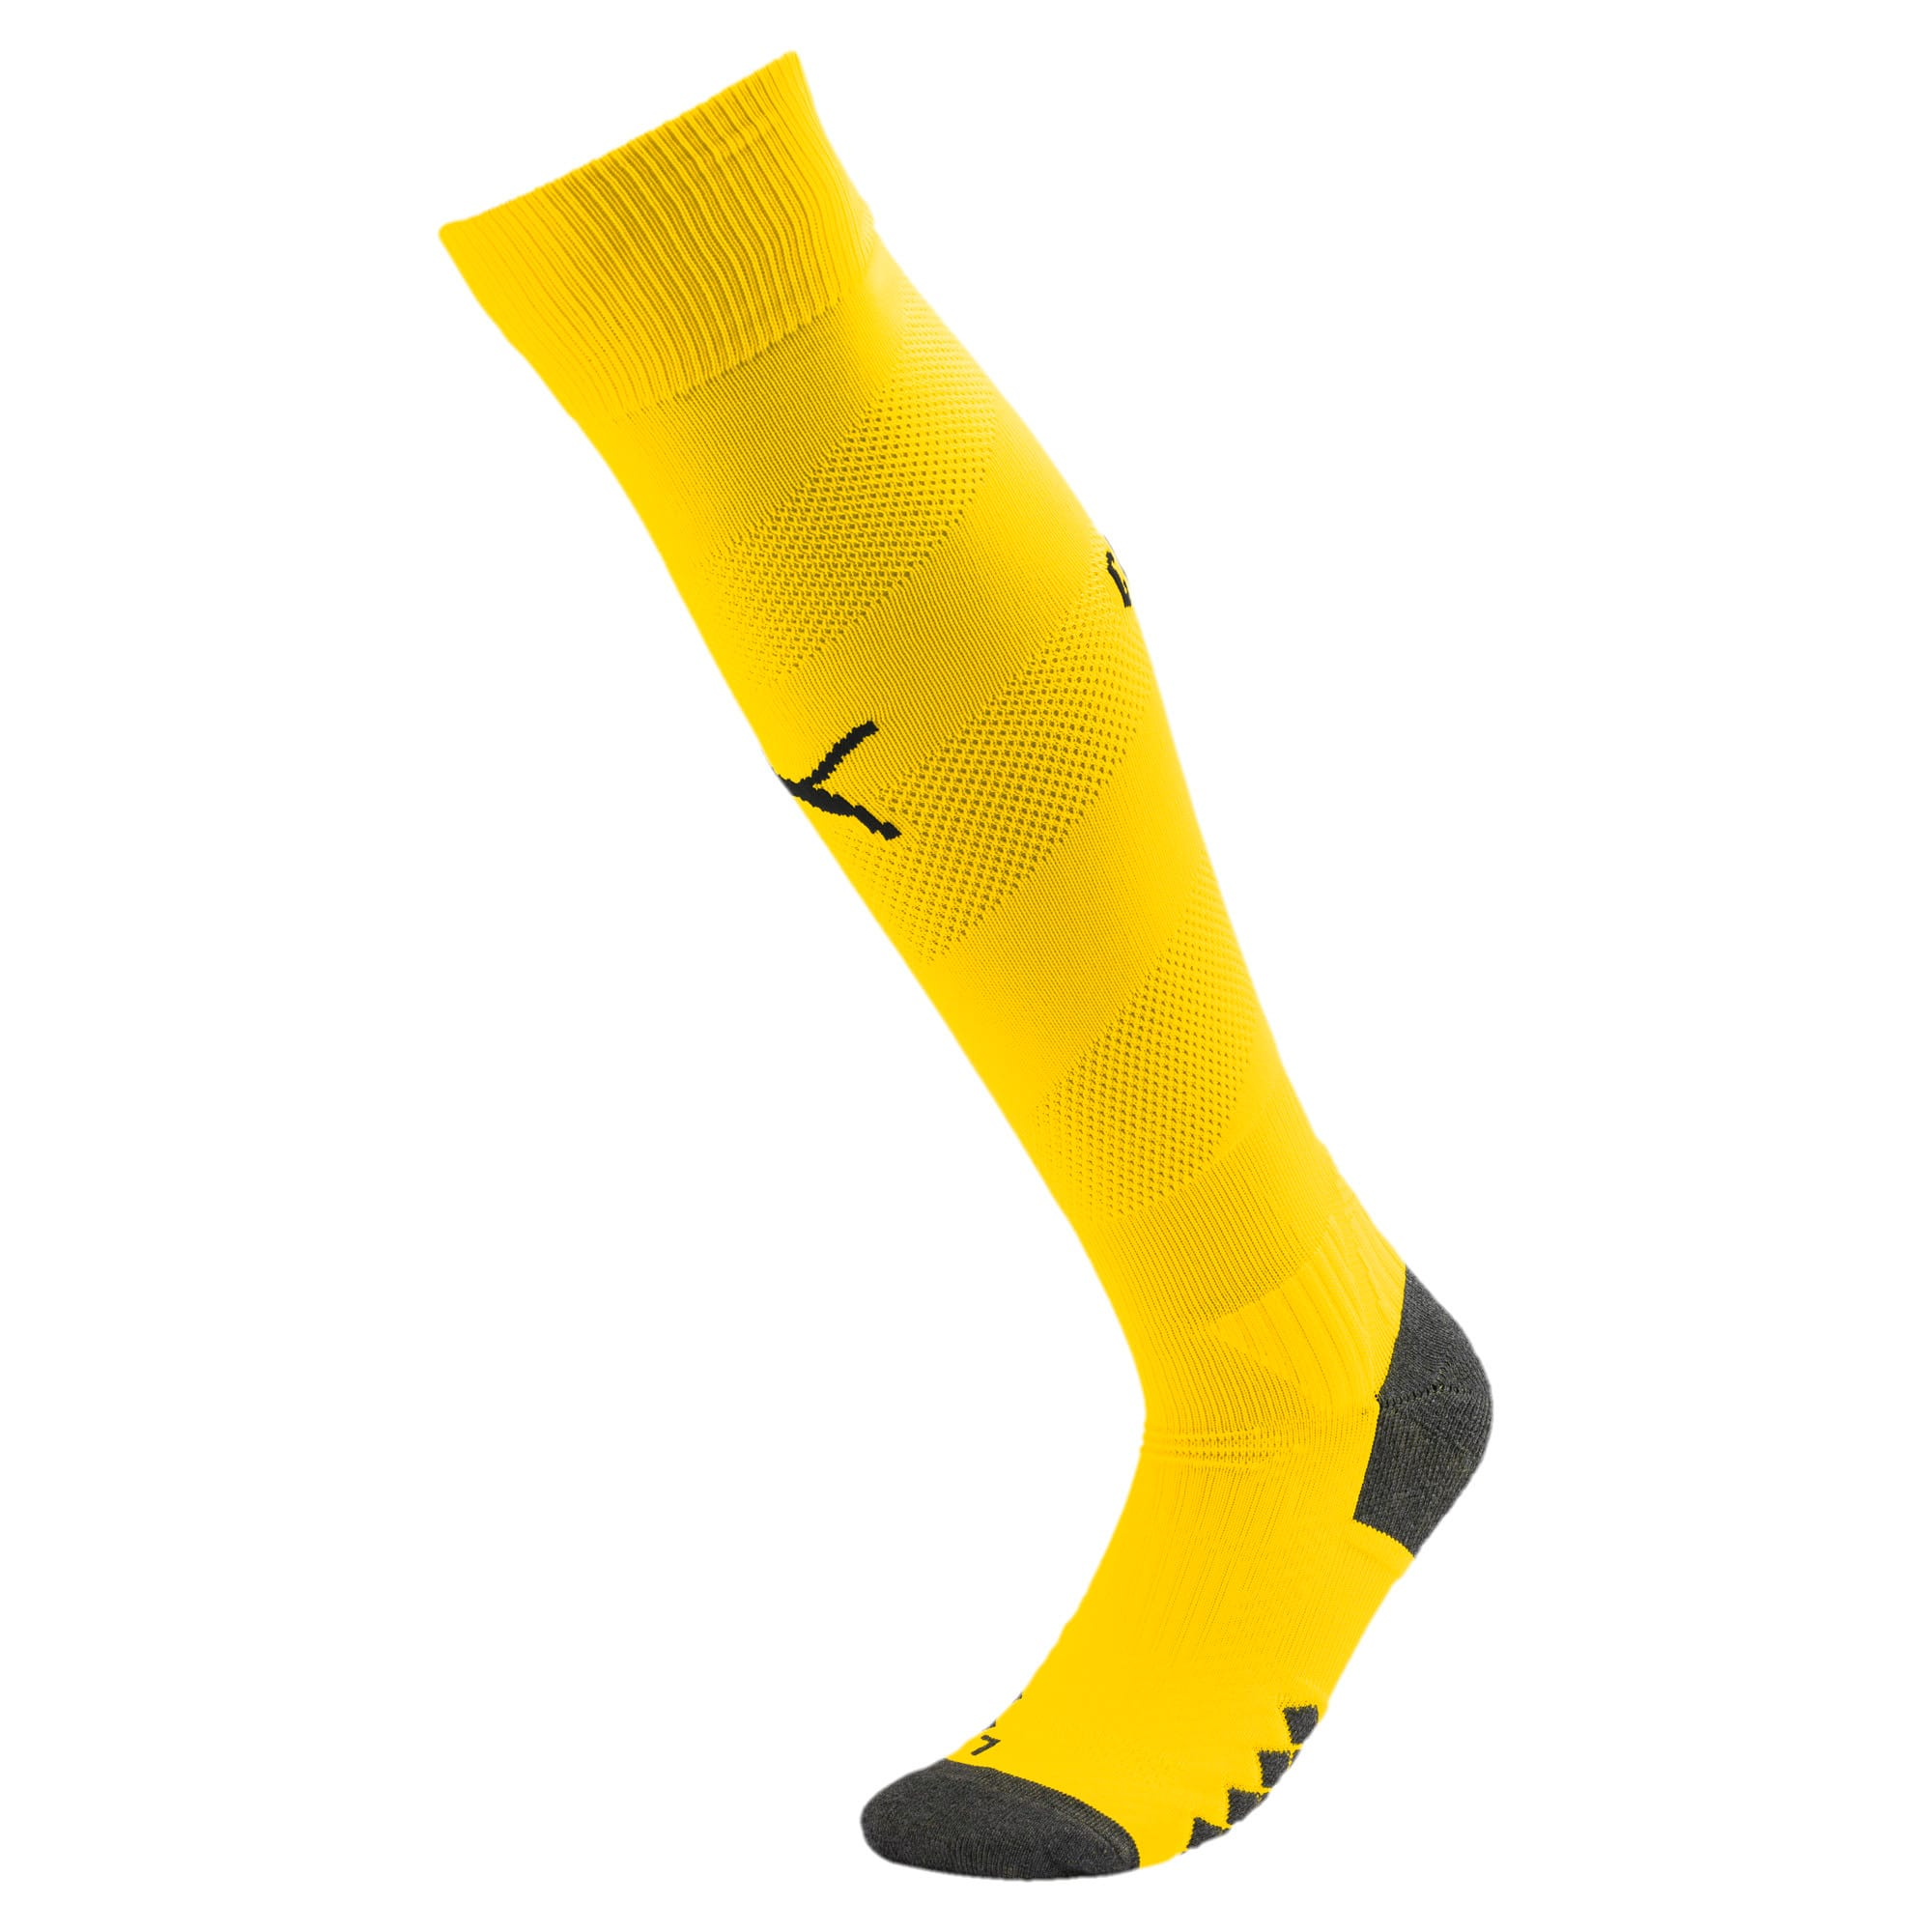 Thumbnail 1 of Manchester City Herren Spiral Socken, Cyber Yellow-Puma Black, medium